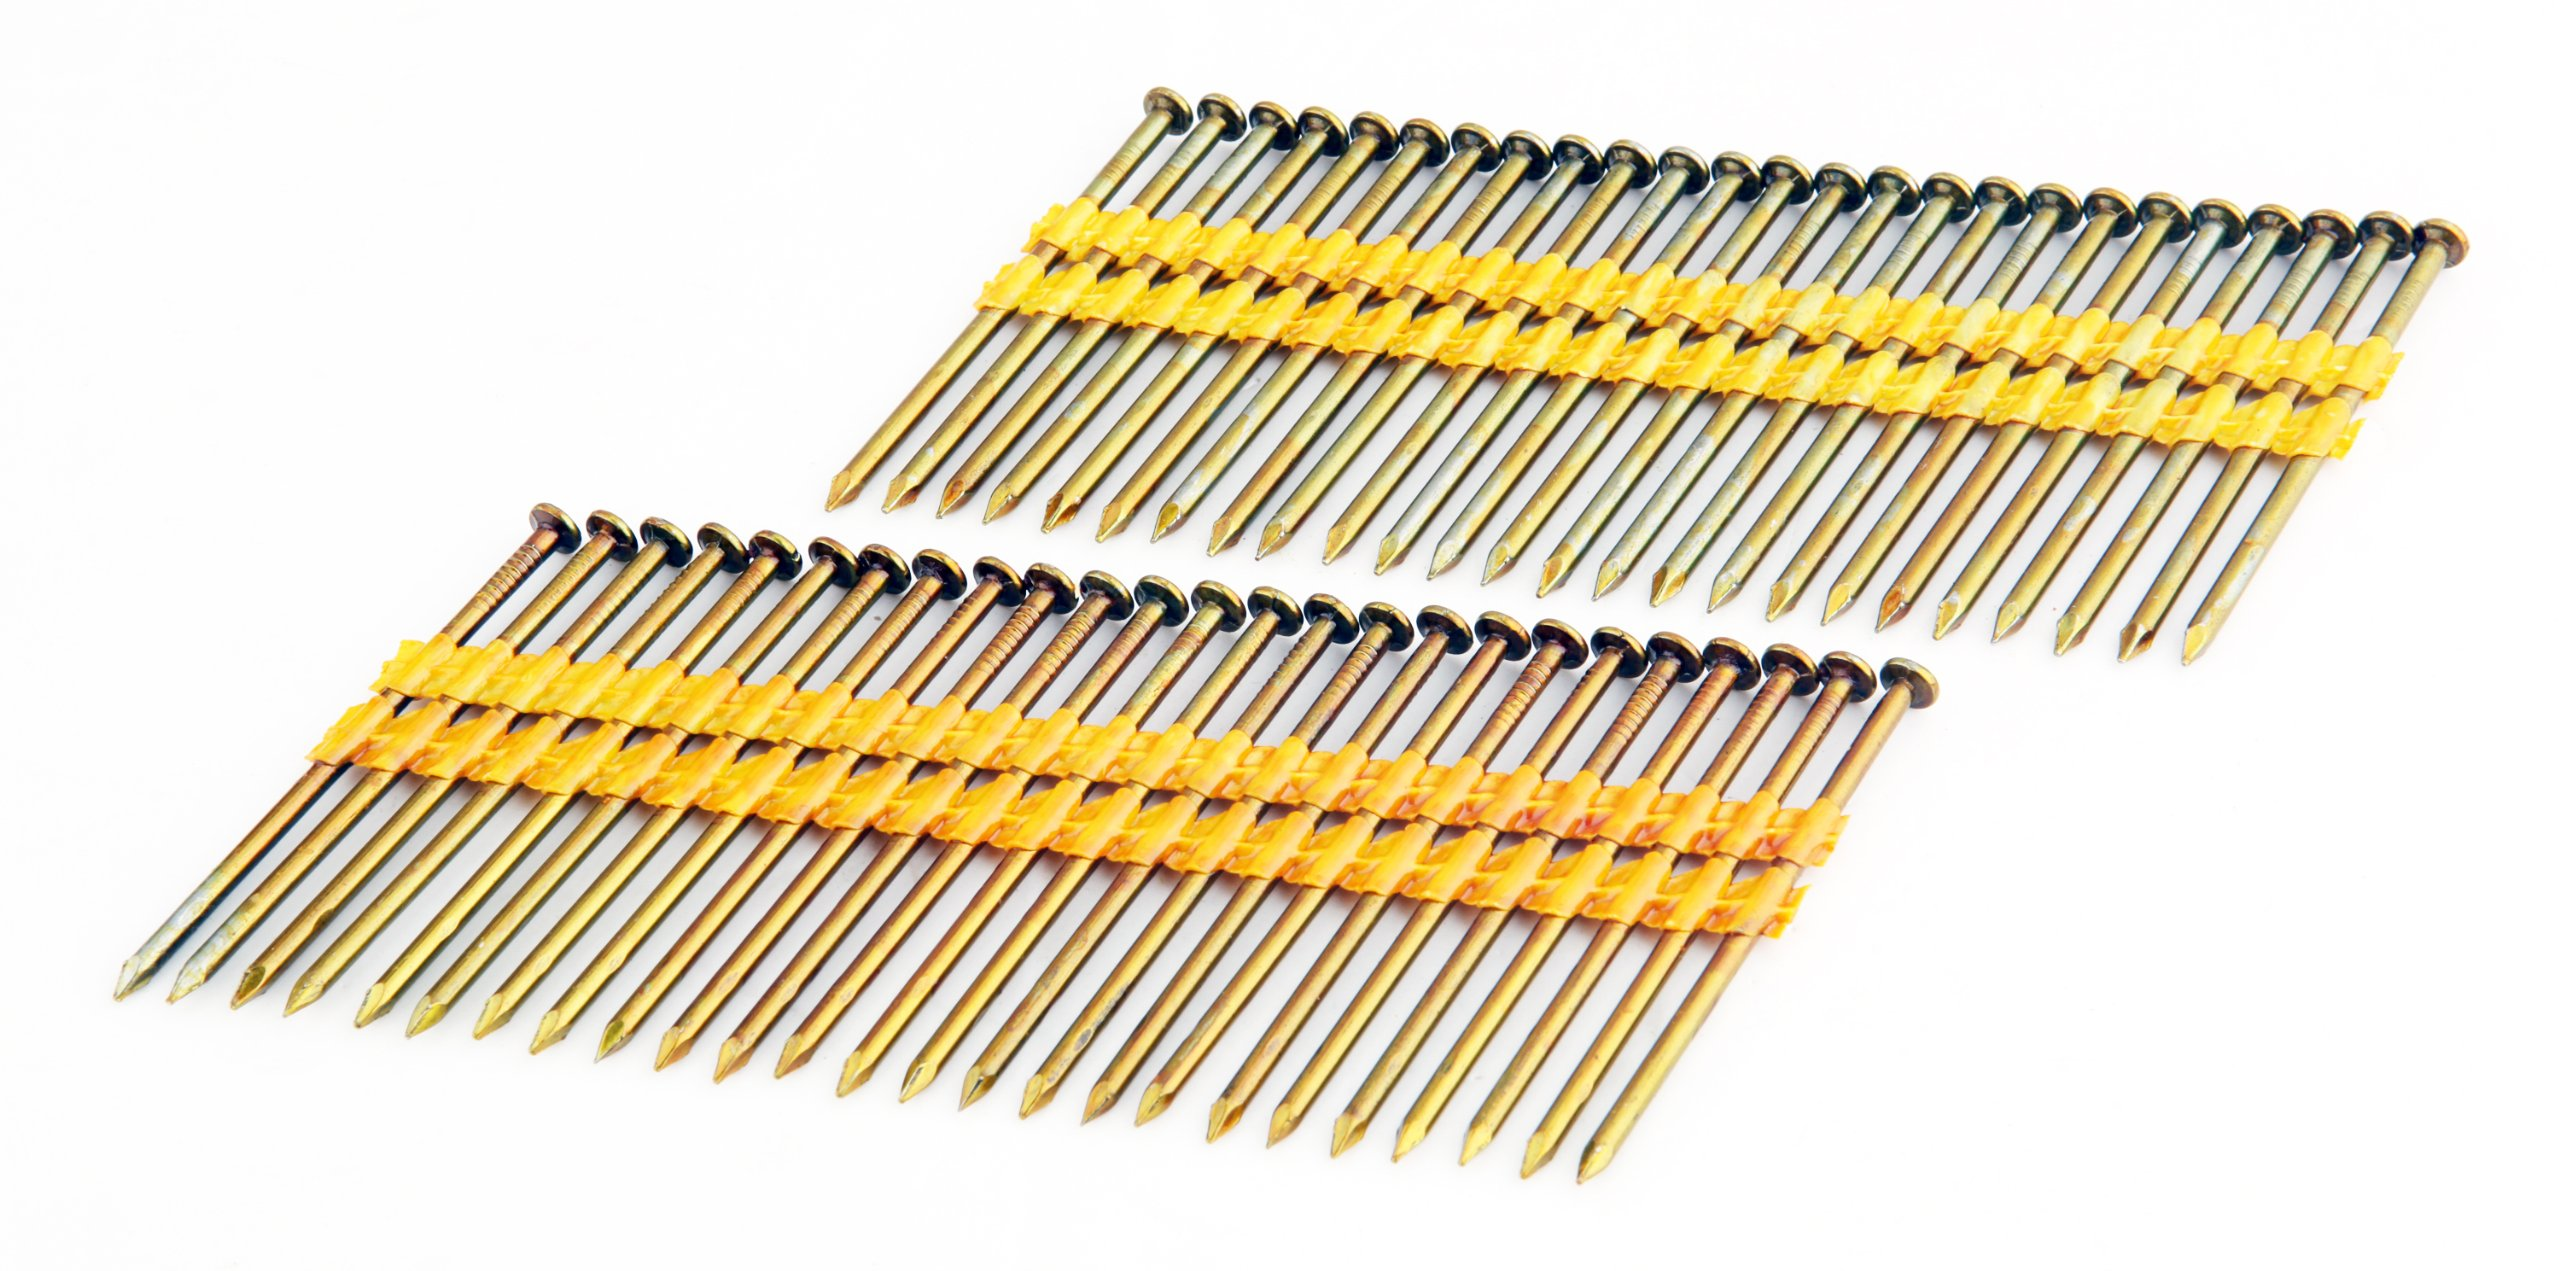 Freeman FR.131-3B 21 Degree .131'' x 3'' Smooth Shank Full Round Head Plastic Collated Brite Finish Framing Nails (2000 count) for General Construction